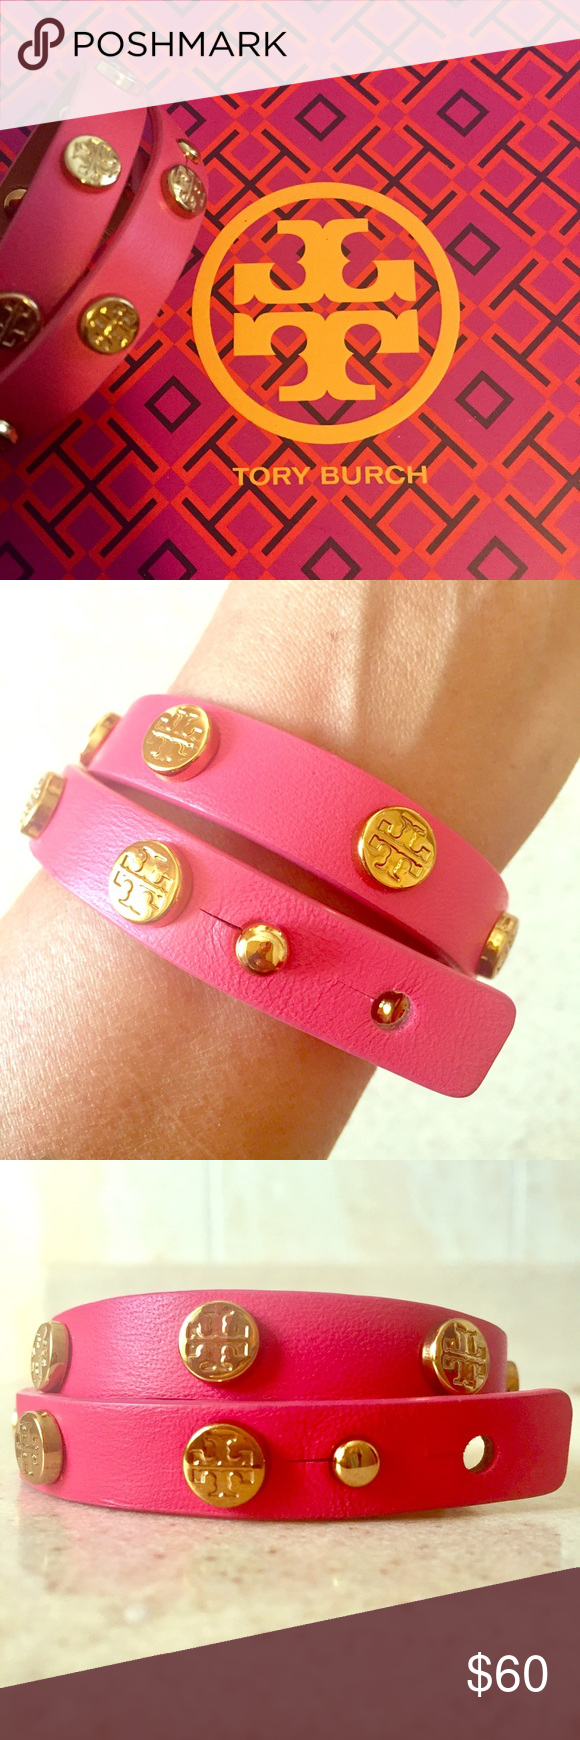 Tory Burch Double Wrap Bracelet Beautiful Tory Burch Double Wrap Logo Stud Bracelet in Pink! Done in leather and dotted with double T's in plated brass. Really pretty, easy to wear, accentuates and adds a pop to any outfit! Worn alone or stacked with a watch or additional bracelets- this is one accessory that never fails to add a little chic to your look. New/ Never Used/ In original dust bag w/tag. Tory Burch Jewelry Bracelets